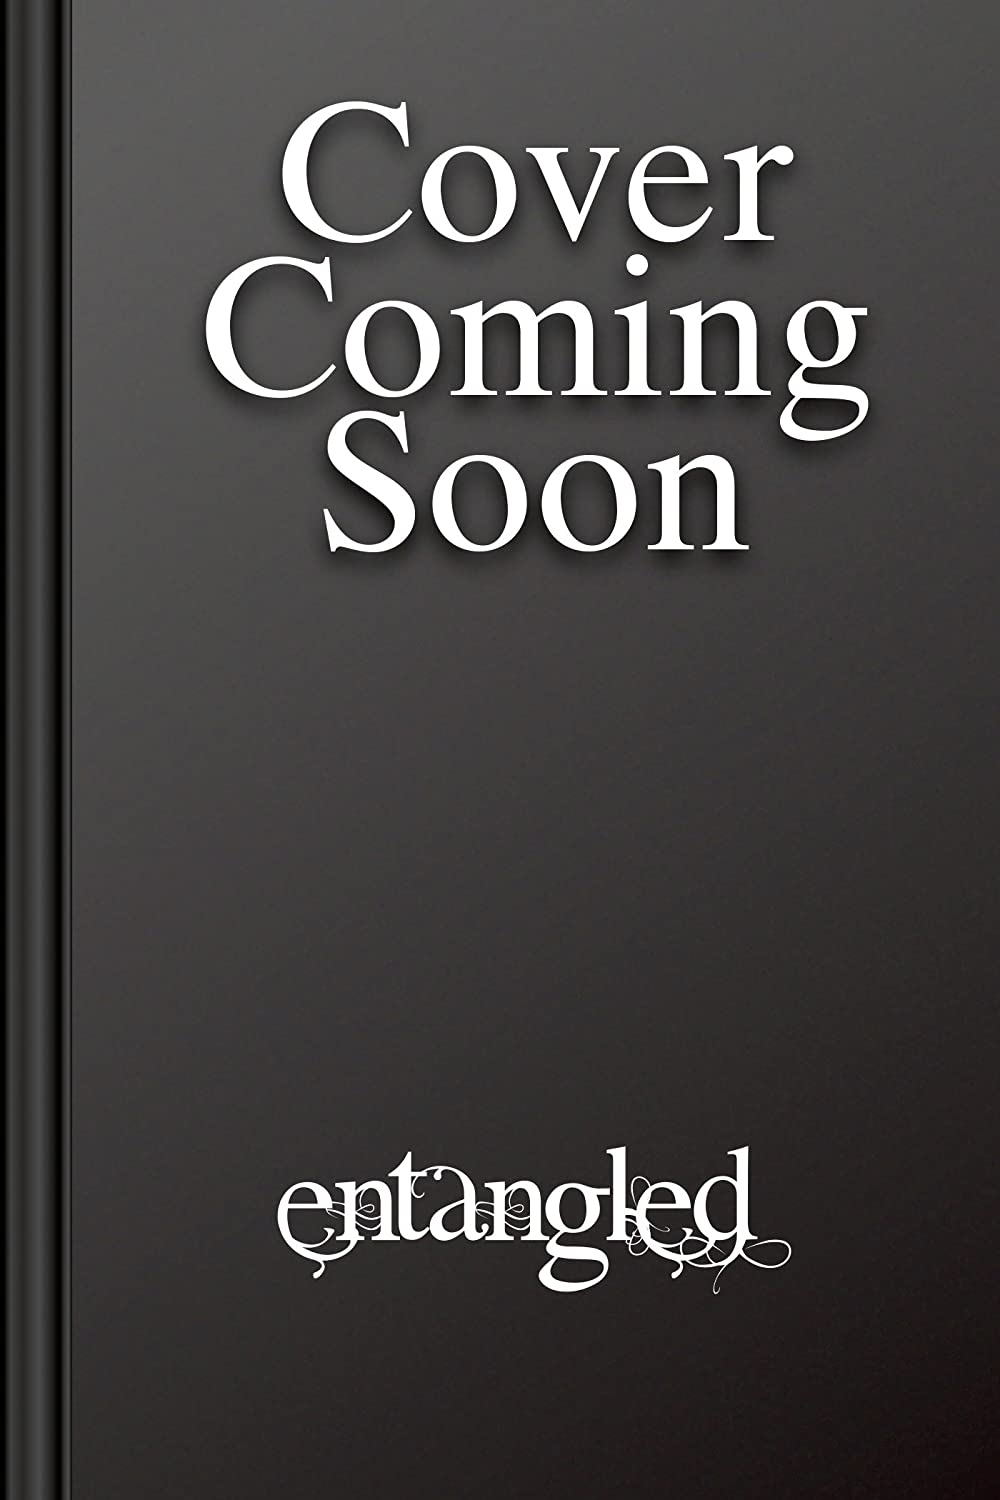 http://www.amazon.com/Super-Sweet-Life-Entangled-Teen-ebook/dp/B00HTJH9J0/ref=la_B007AHT3LS_1_5?